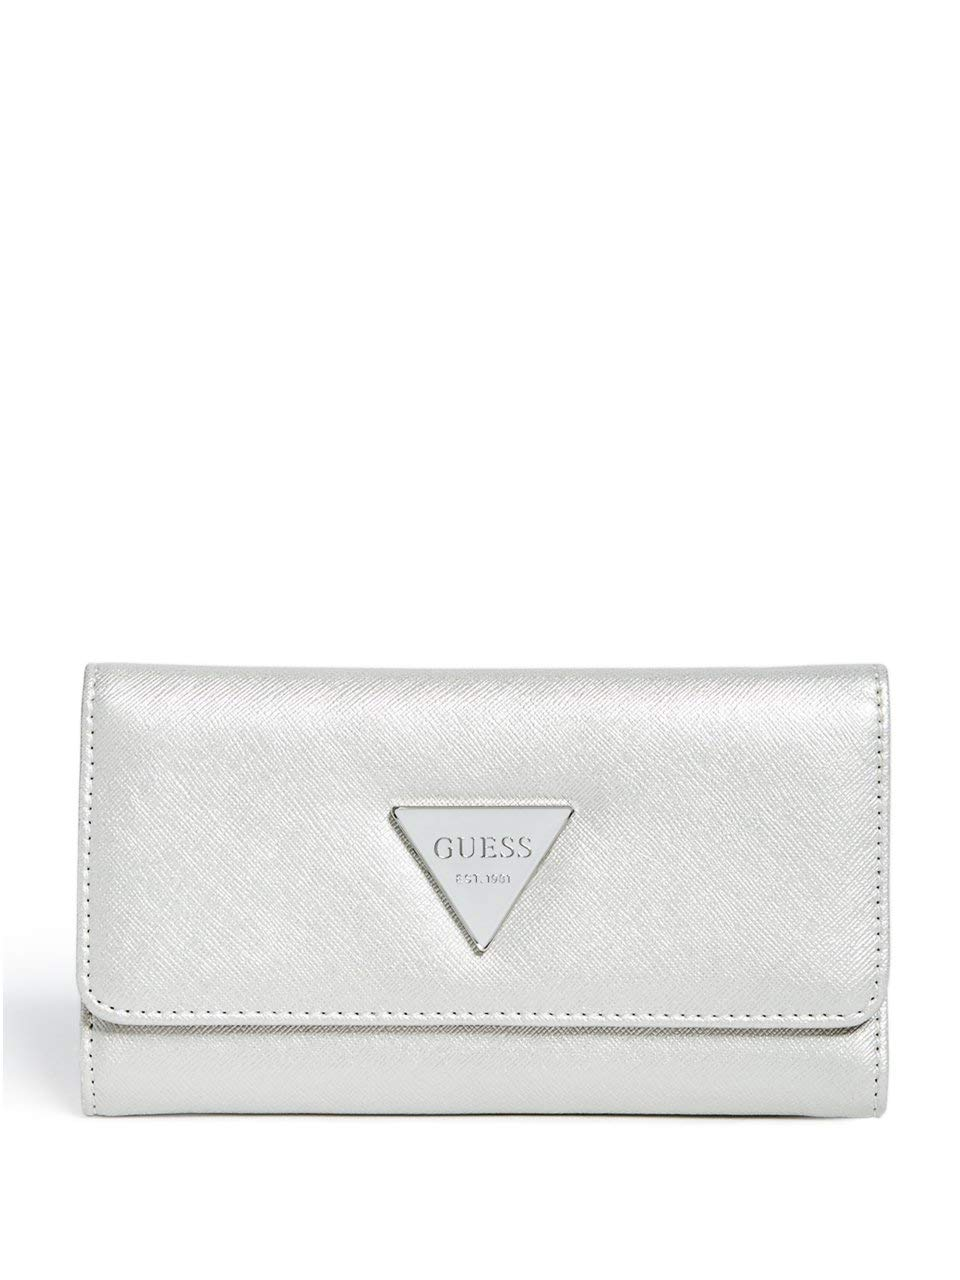 GUESS Factory Abree Slim Wallet